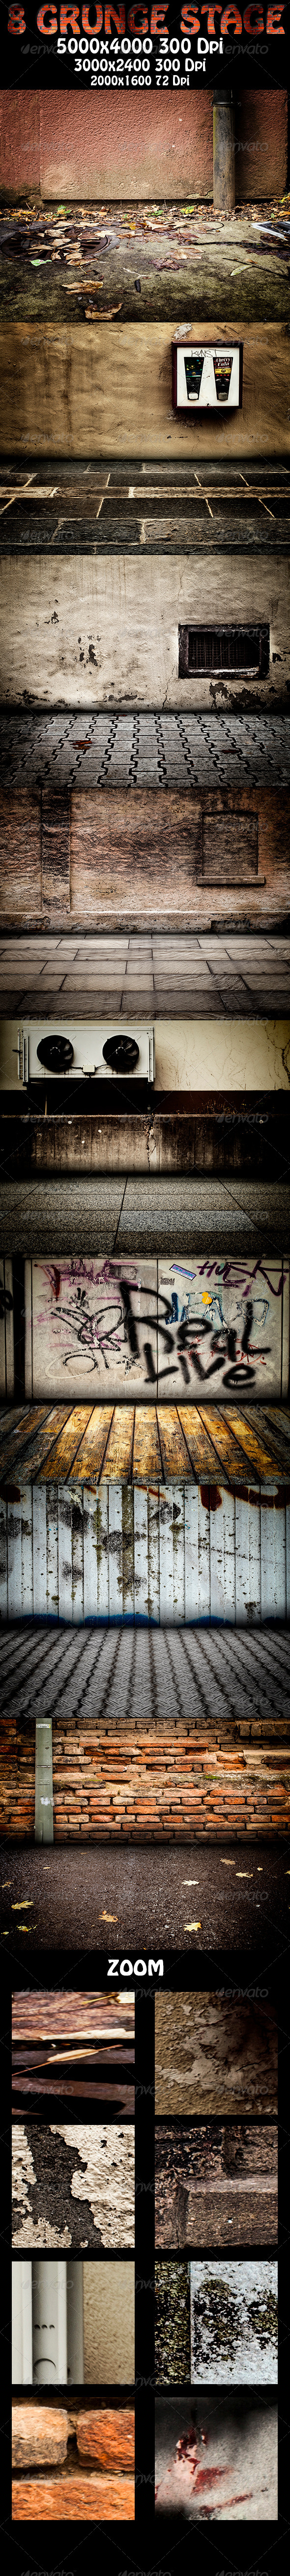 8 Grunge Stage - Urban Backgrounds